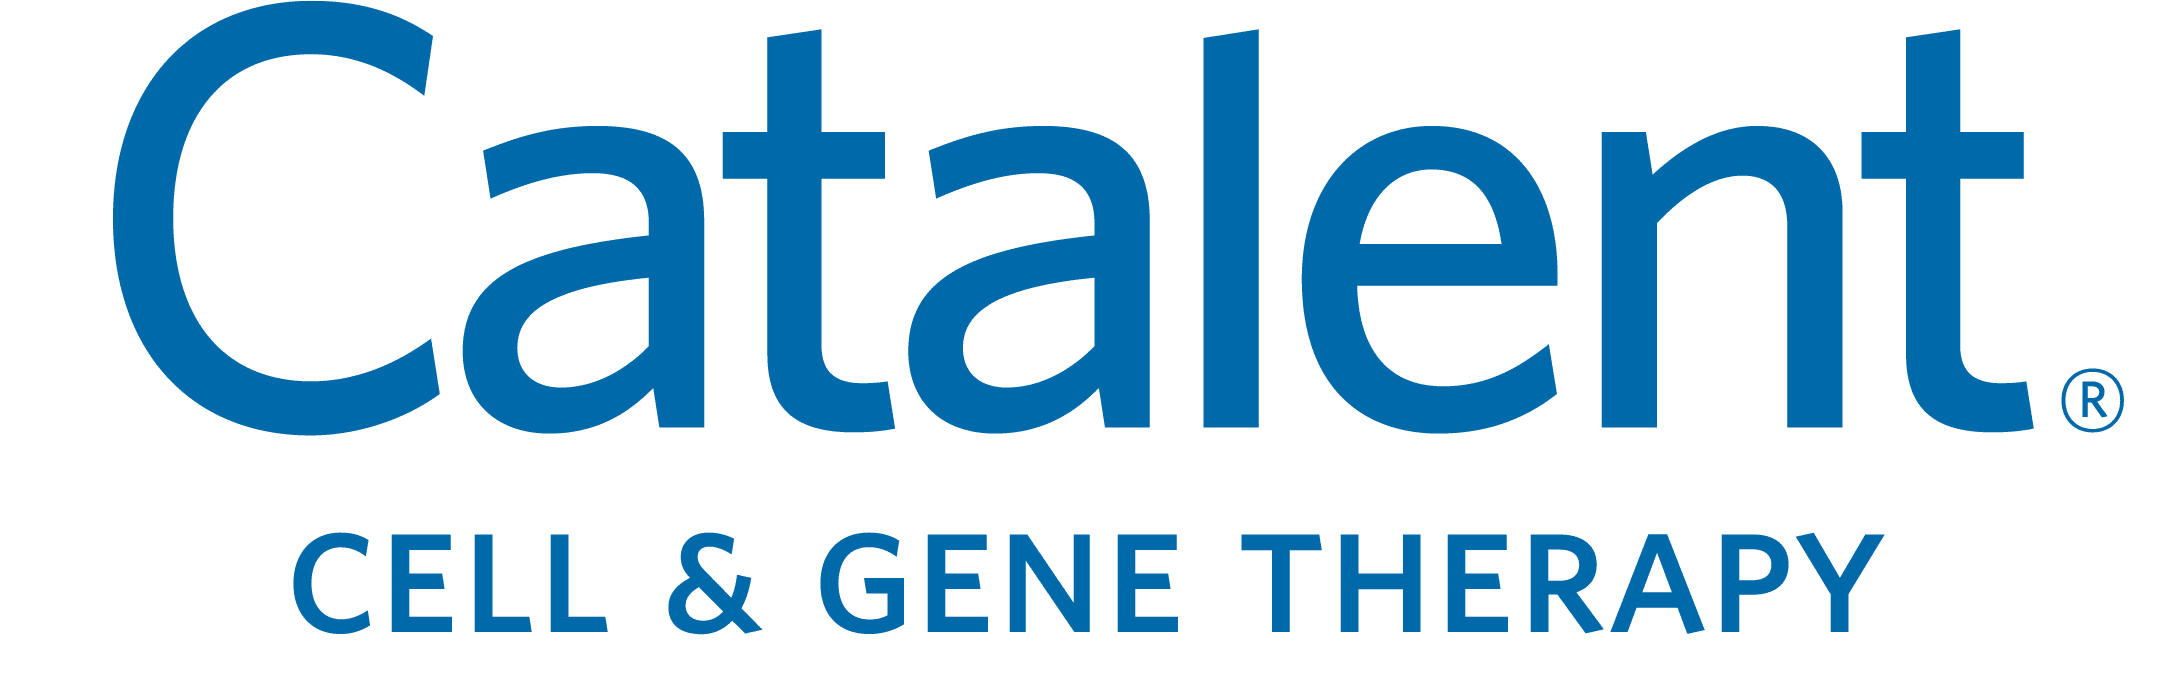 Catalent_Cell Gene Therapy